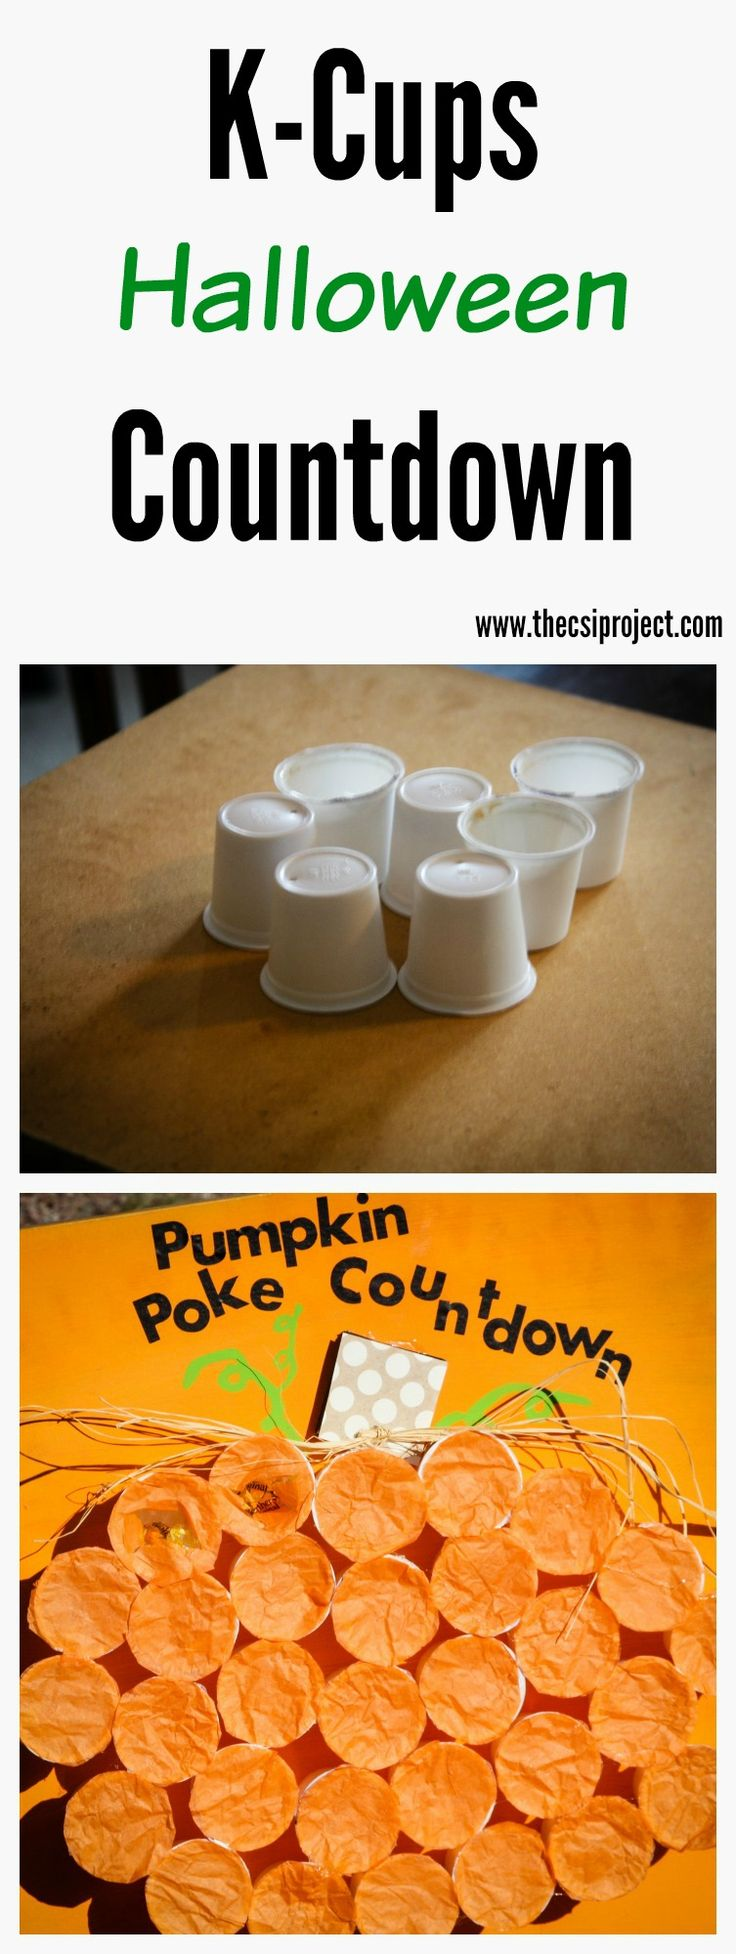 Recycle those K-Cups and create a fun way to countdown to Halloween with just a…